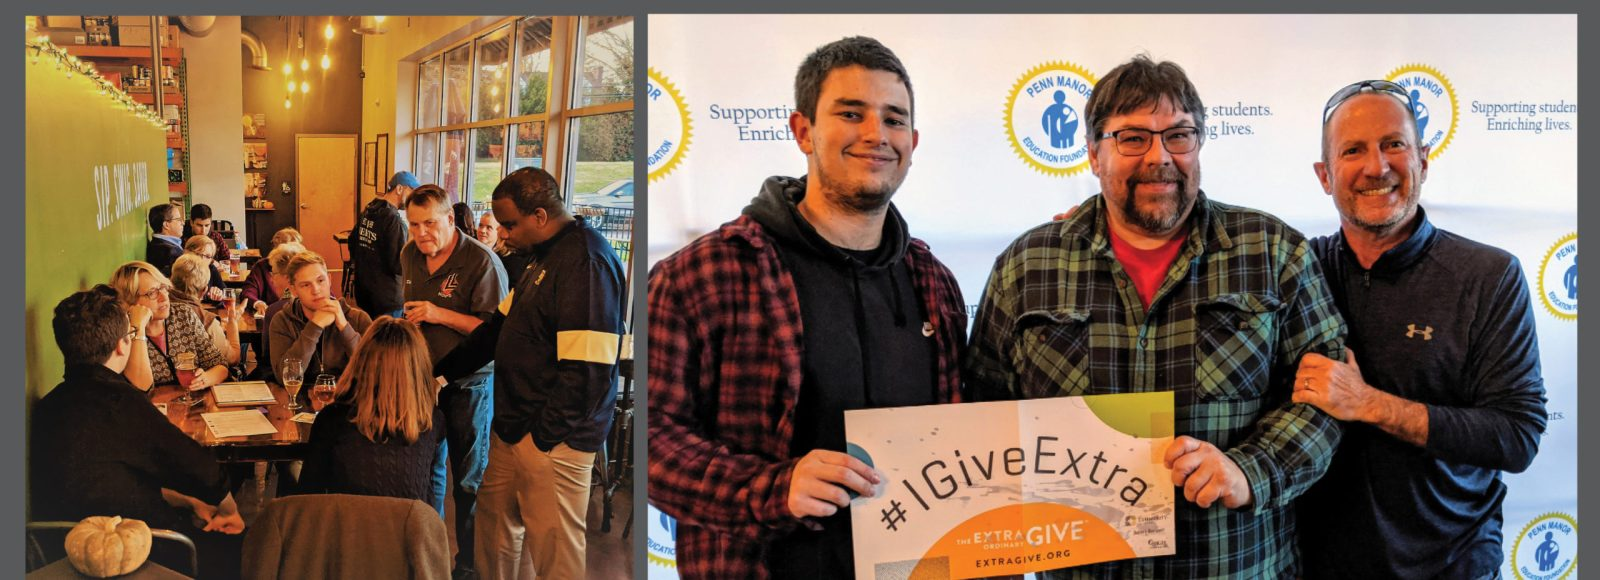 Community pledges more than $16,000 to Foundation during ExtraGive